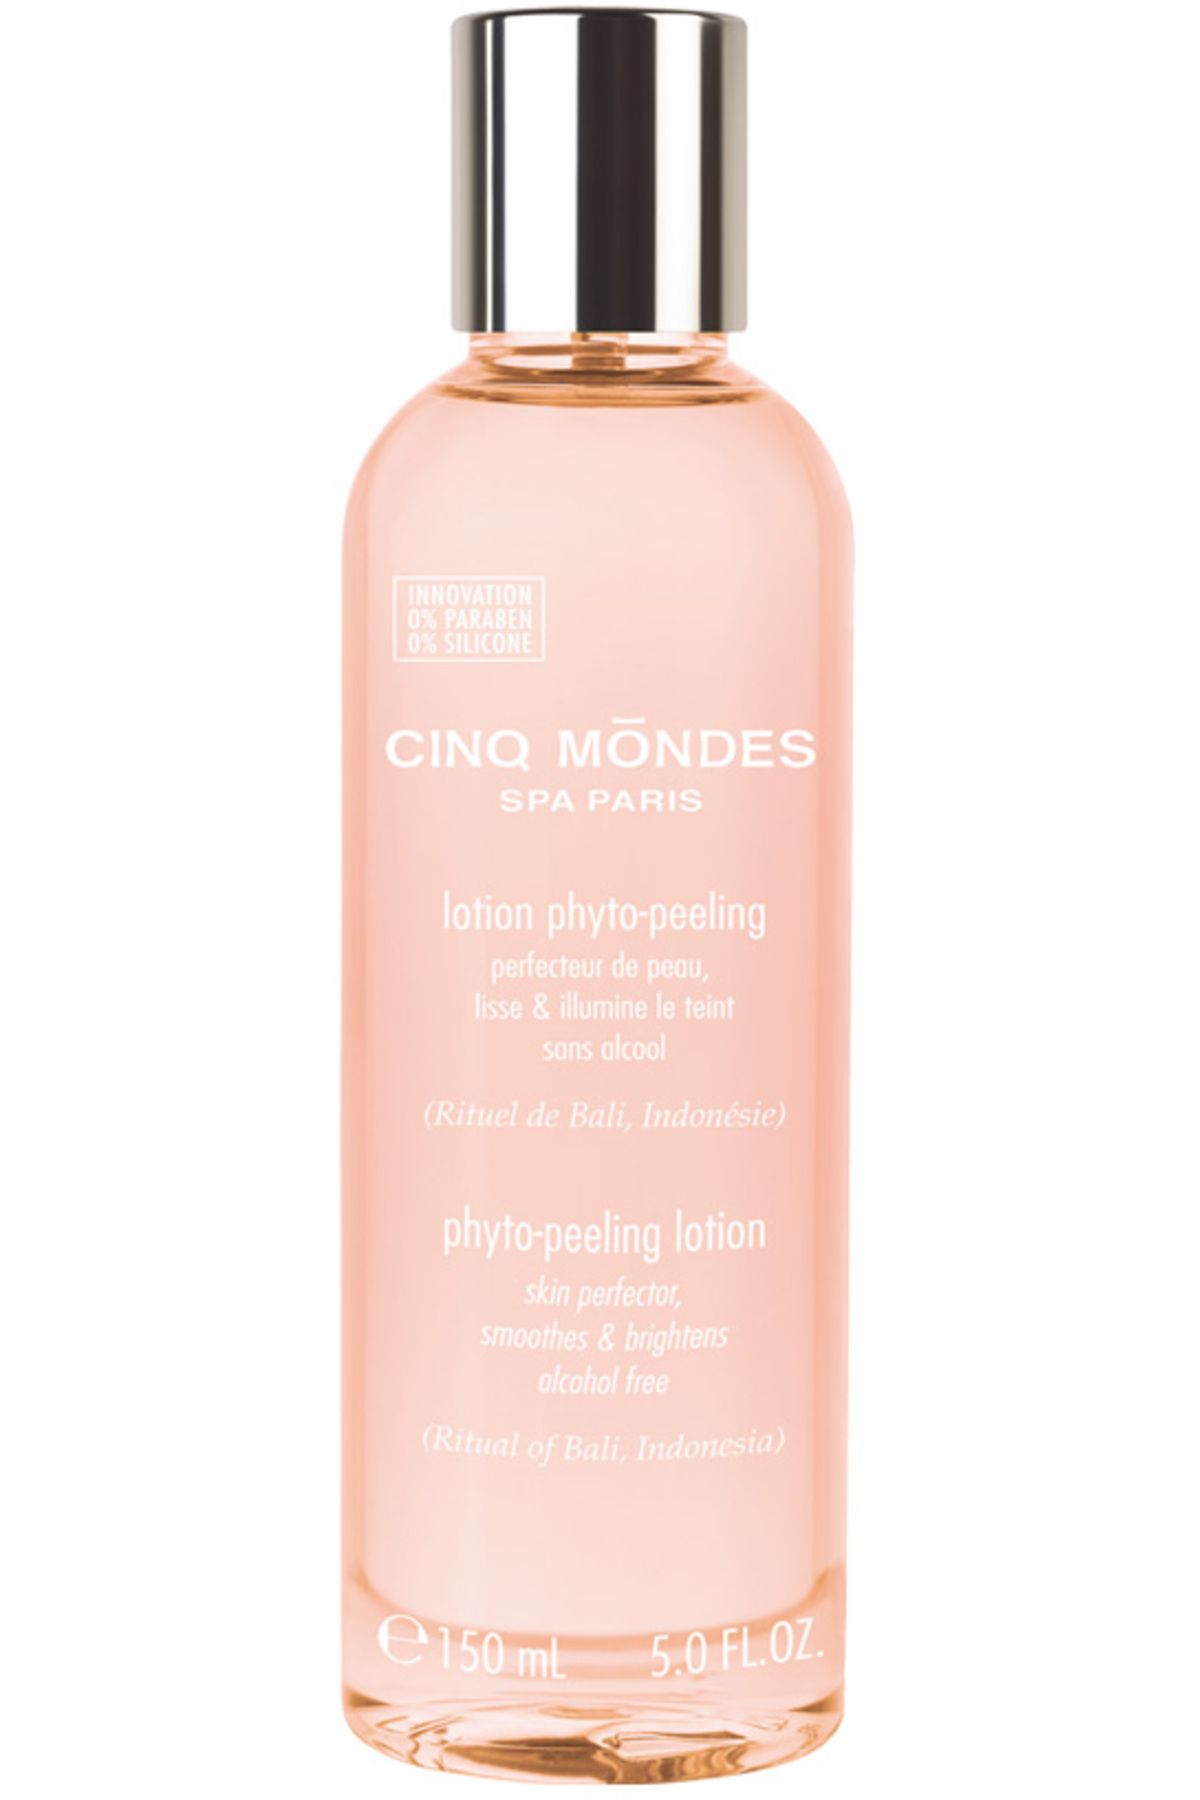 Blissim : Cinq Mondes - Lotion Phytopeeling - Lotion Phytopeeling